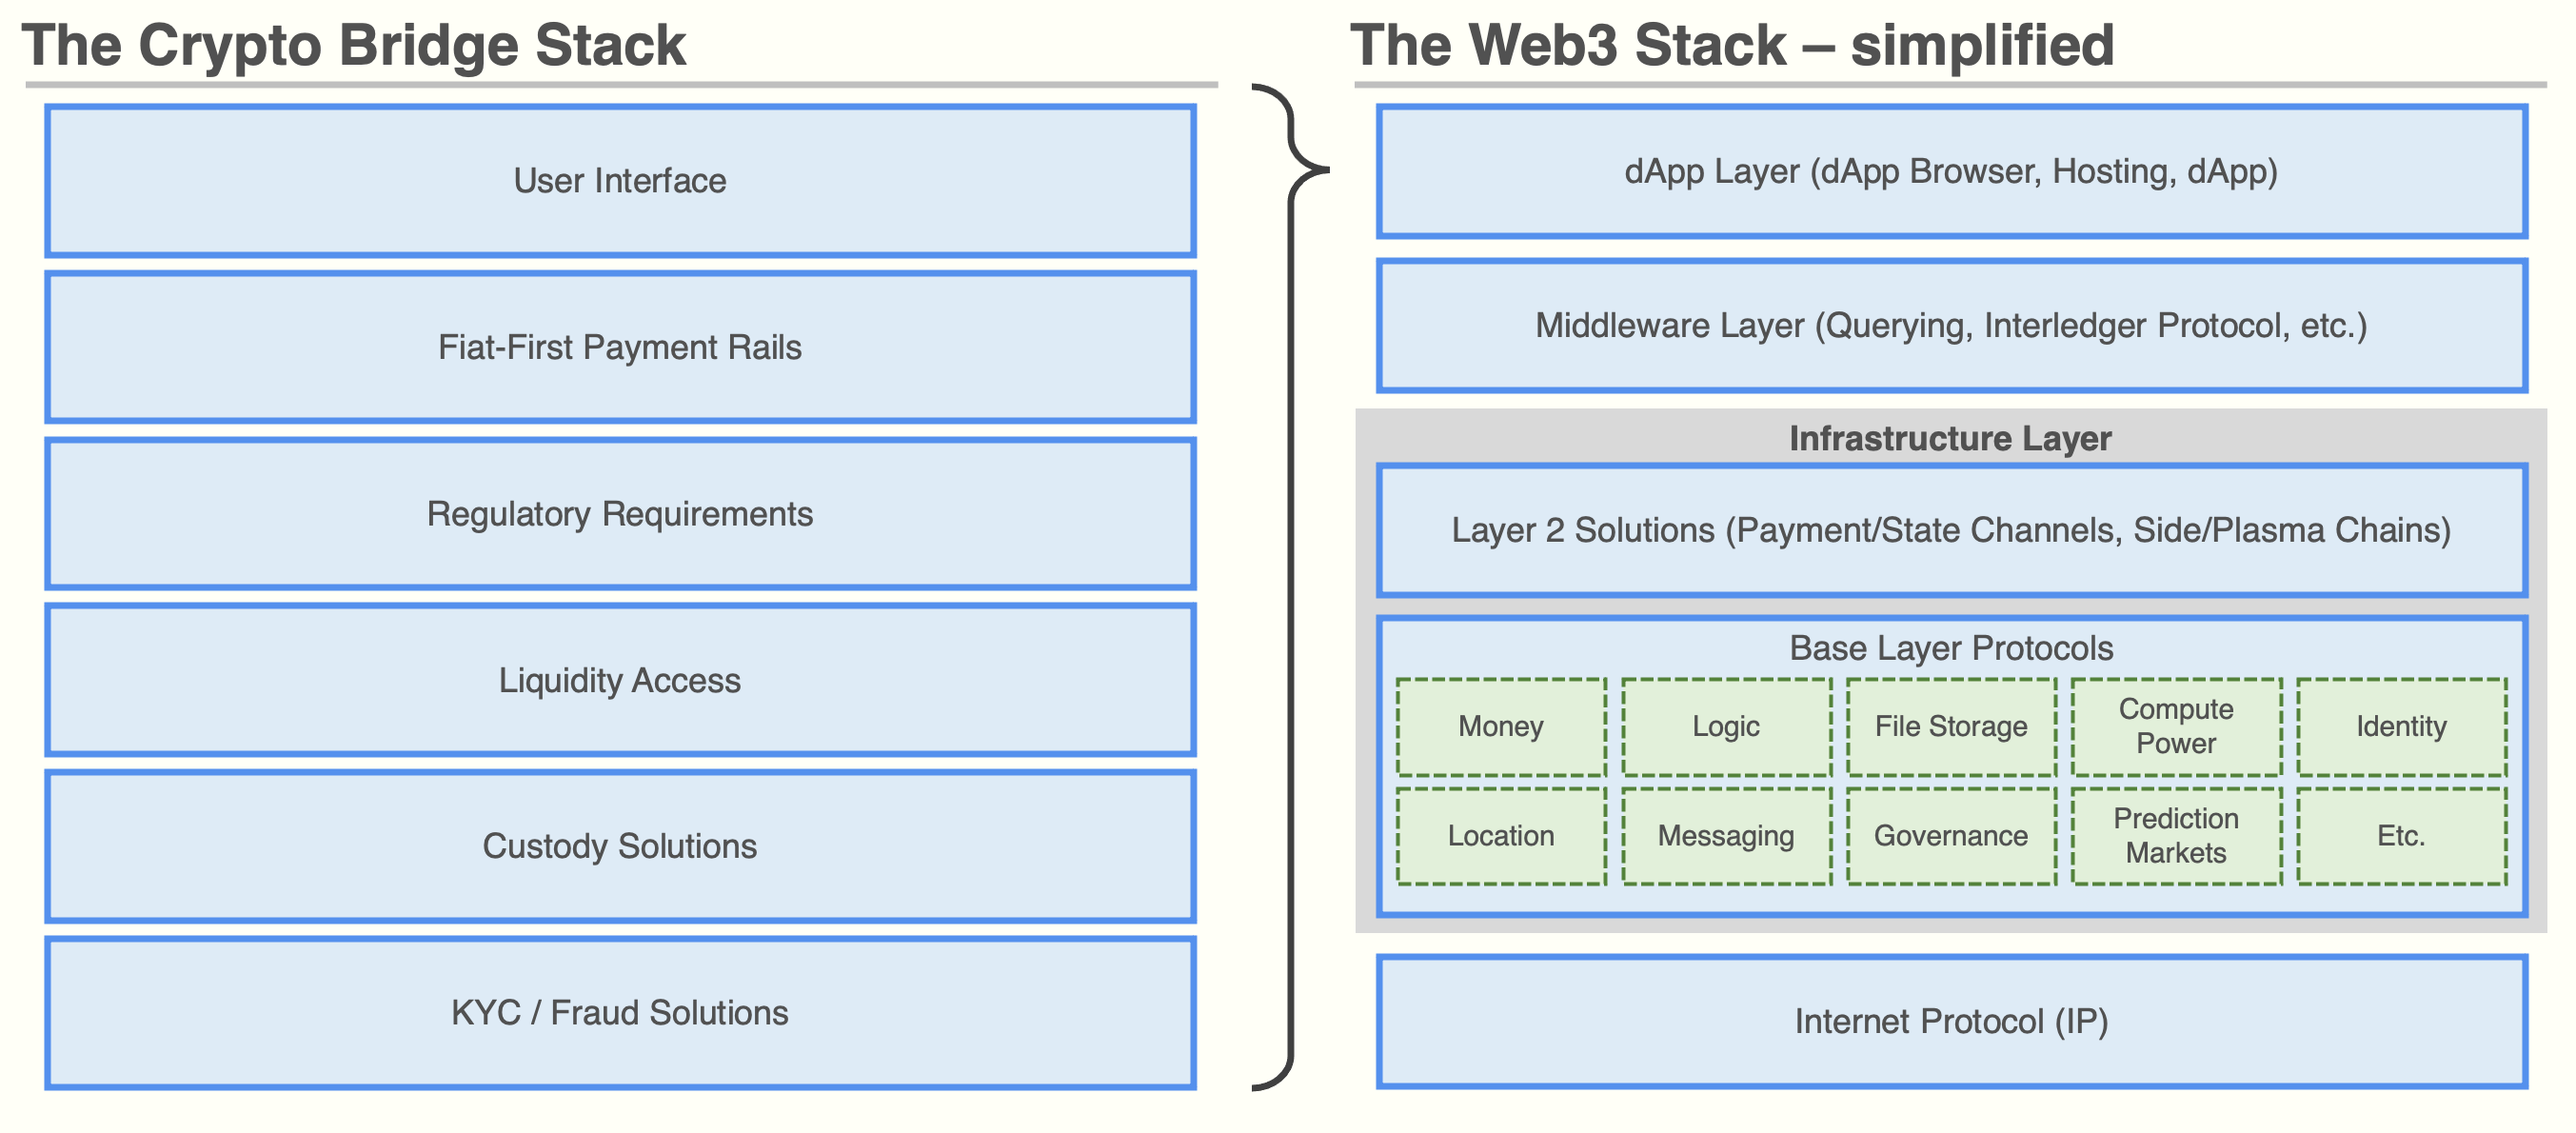 How the Crypto Bridge Stack connects to the Web3 Stack